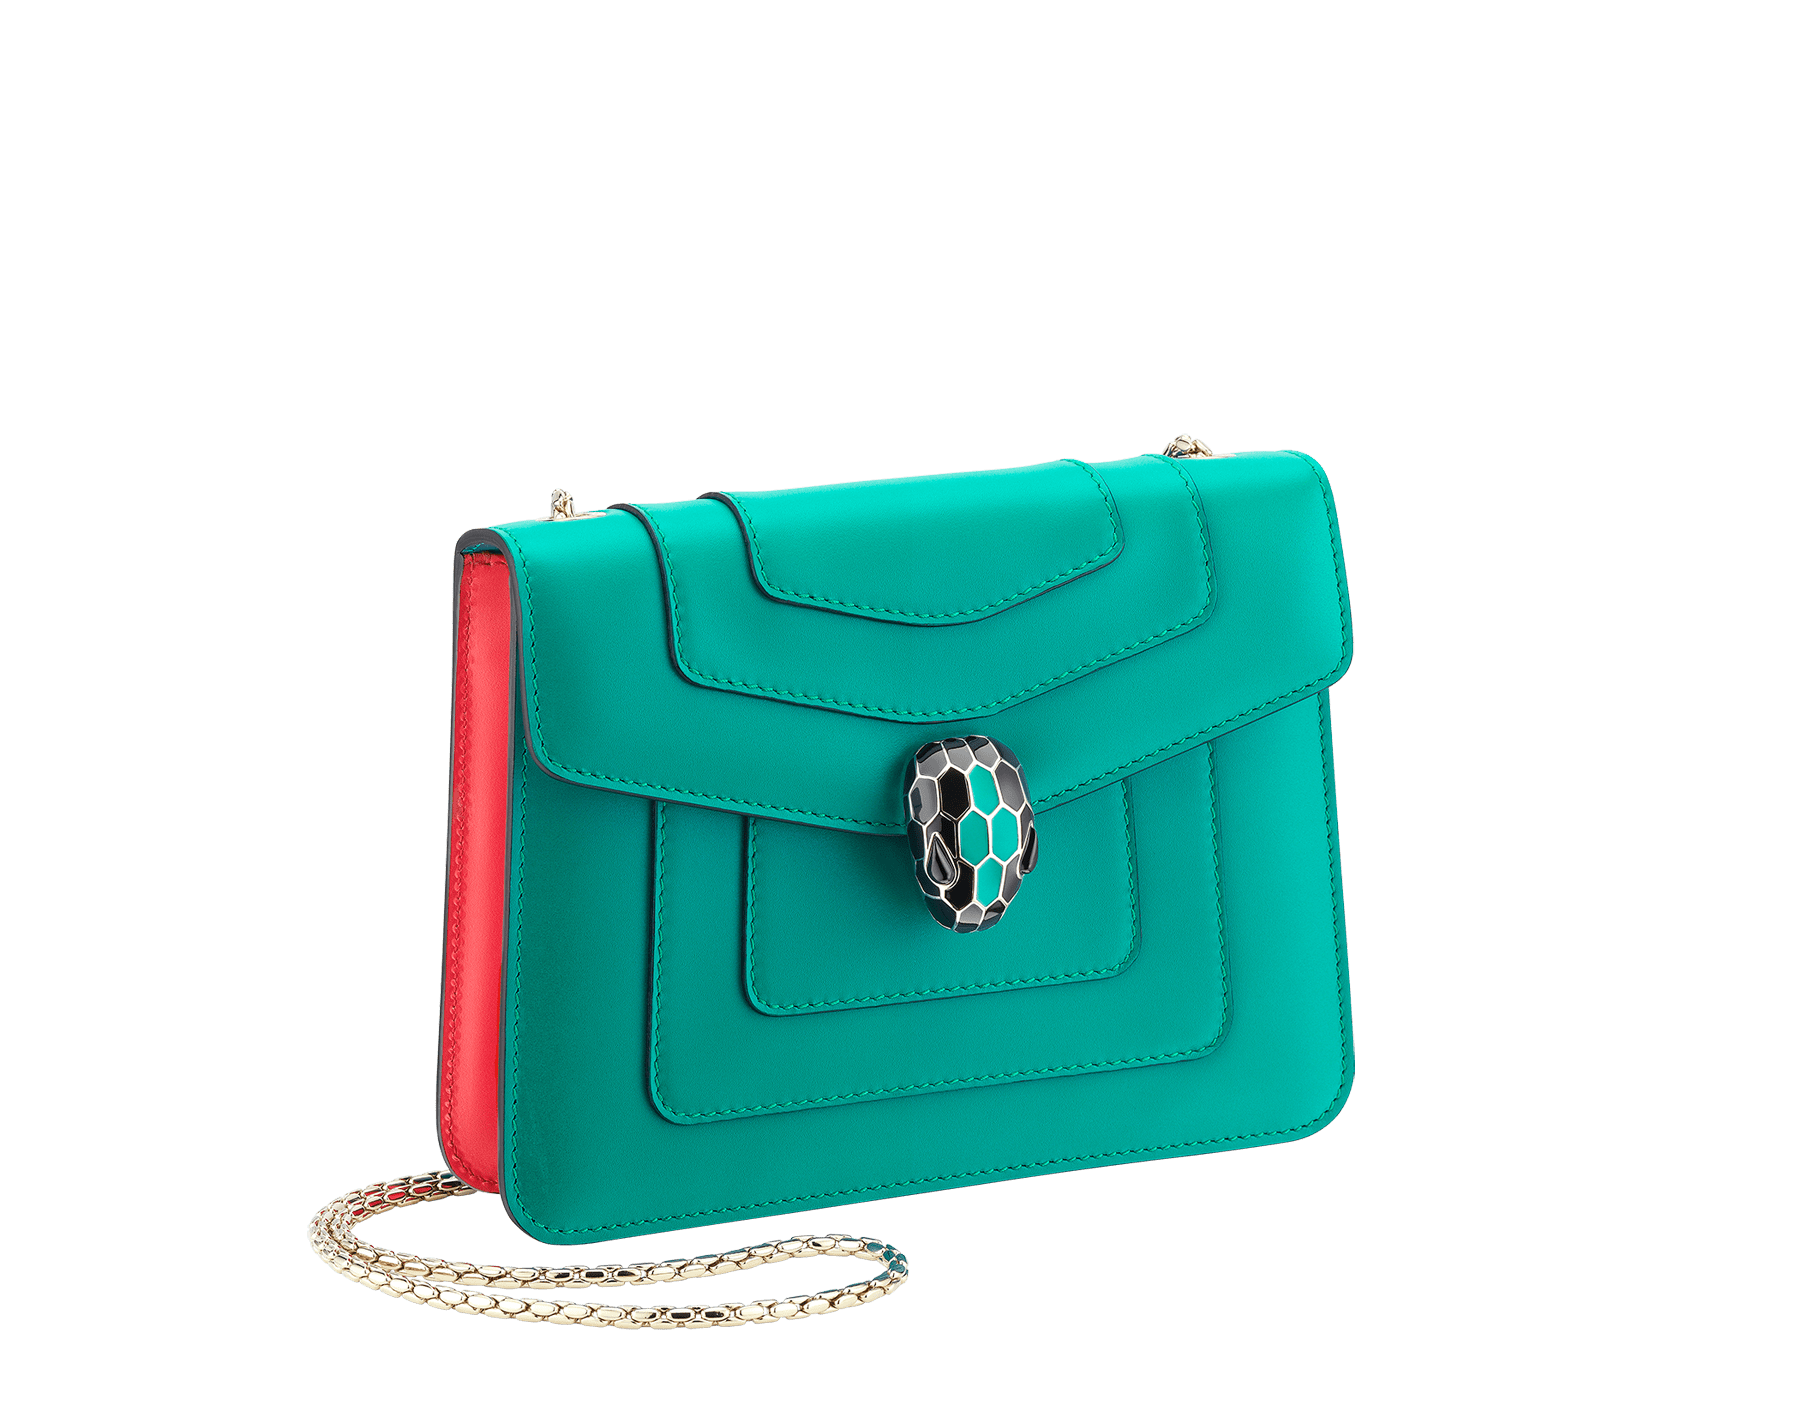 Serpenti Forever crossbody bag in tropical turquoise smooth calf leather body and sea star coral calf leather sides. Snakehead closure in light gold plated brass decorated with tropical turquoise and black enamel, and black onyx eyes. 287958 image 2